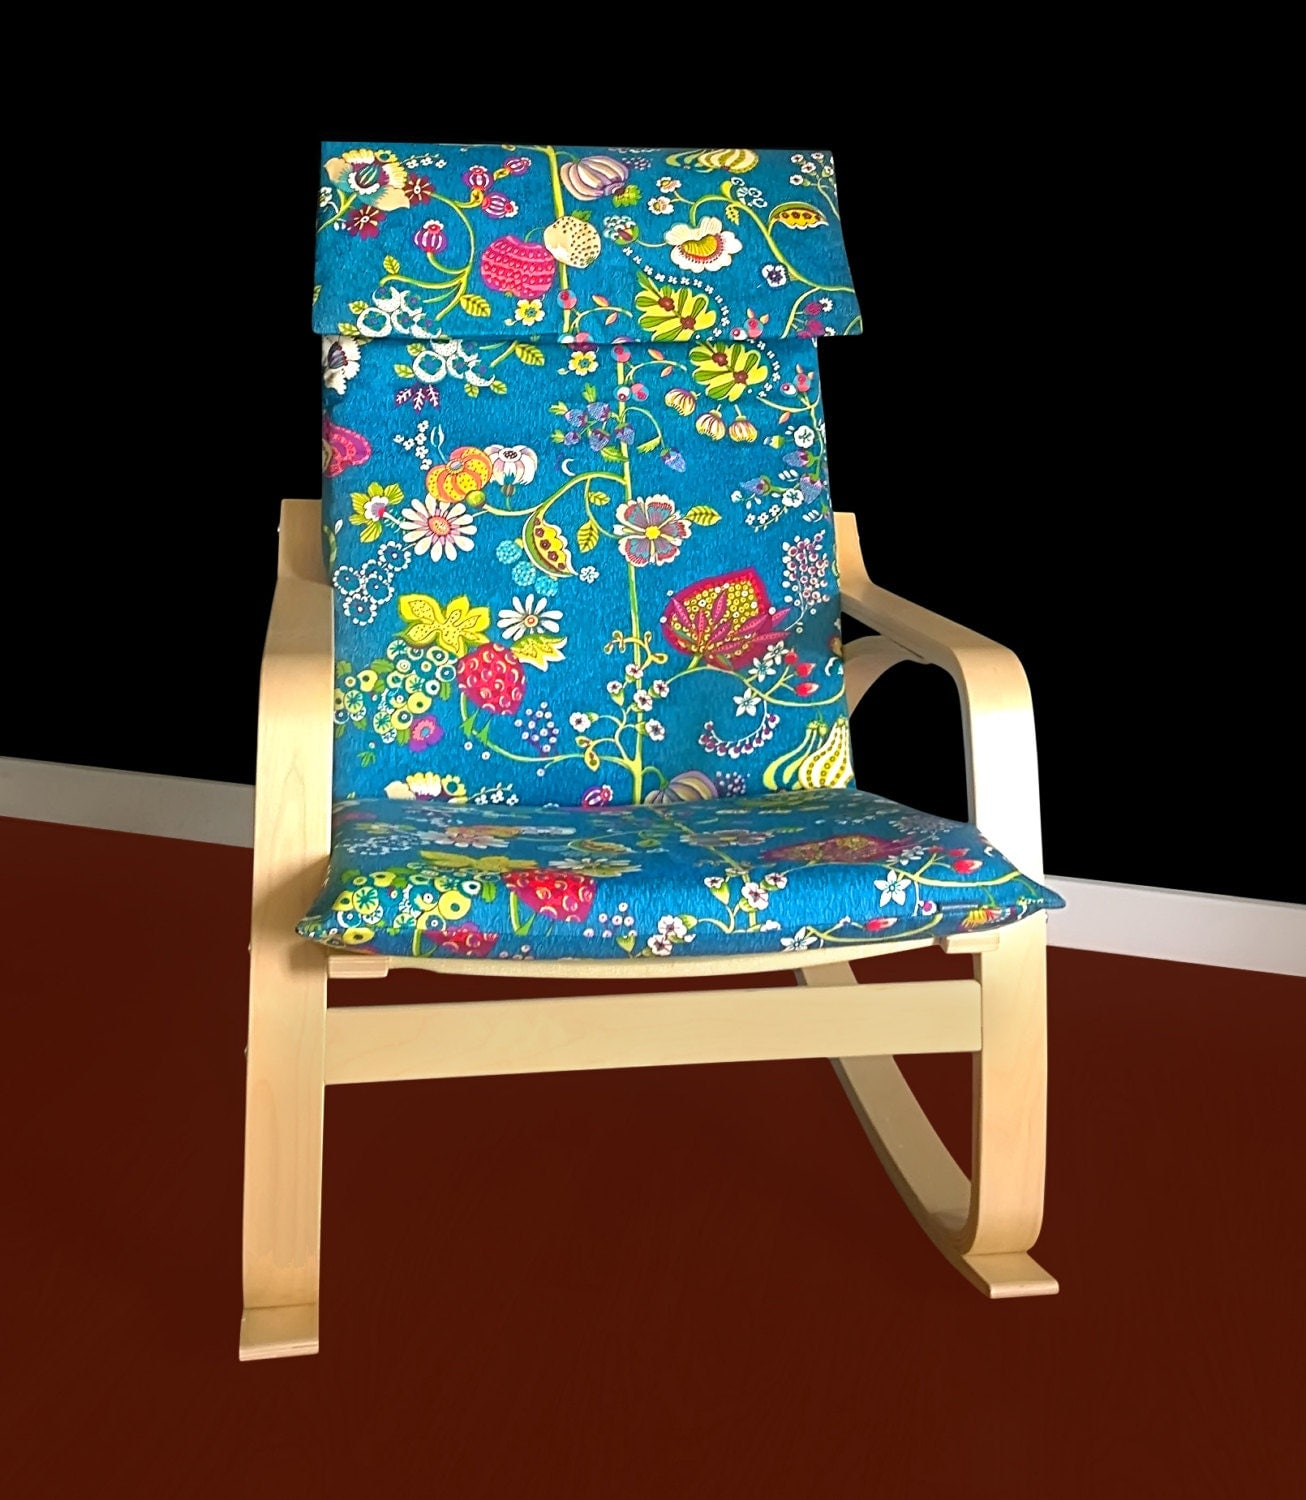 ikea poang chair review cheap sashes wholesale flowers cover customized flower print